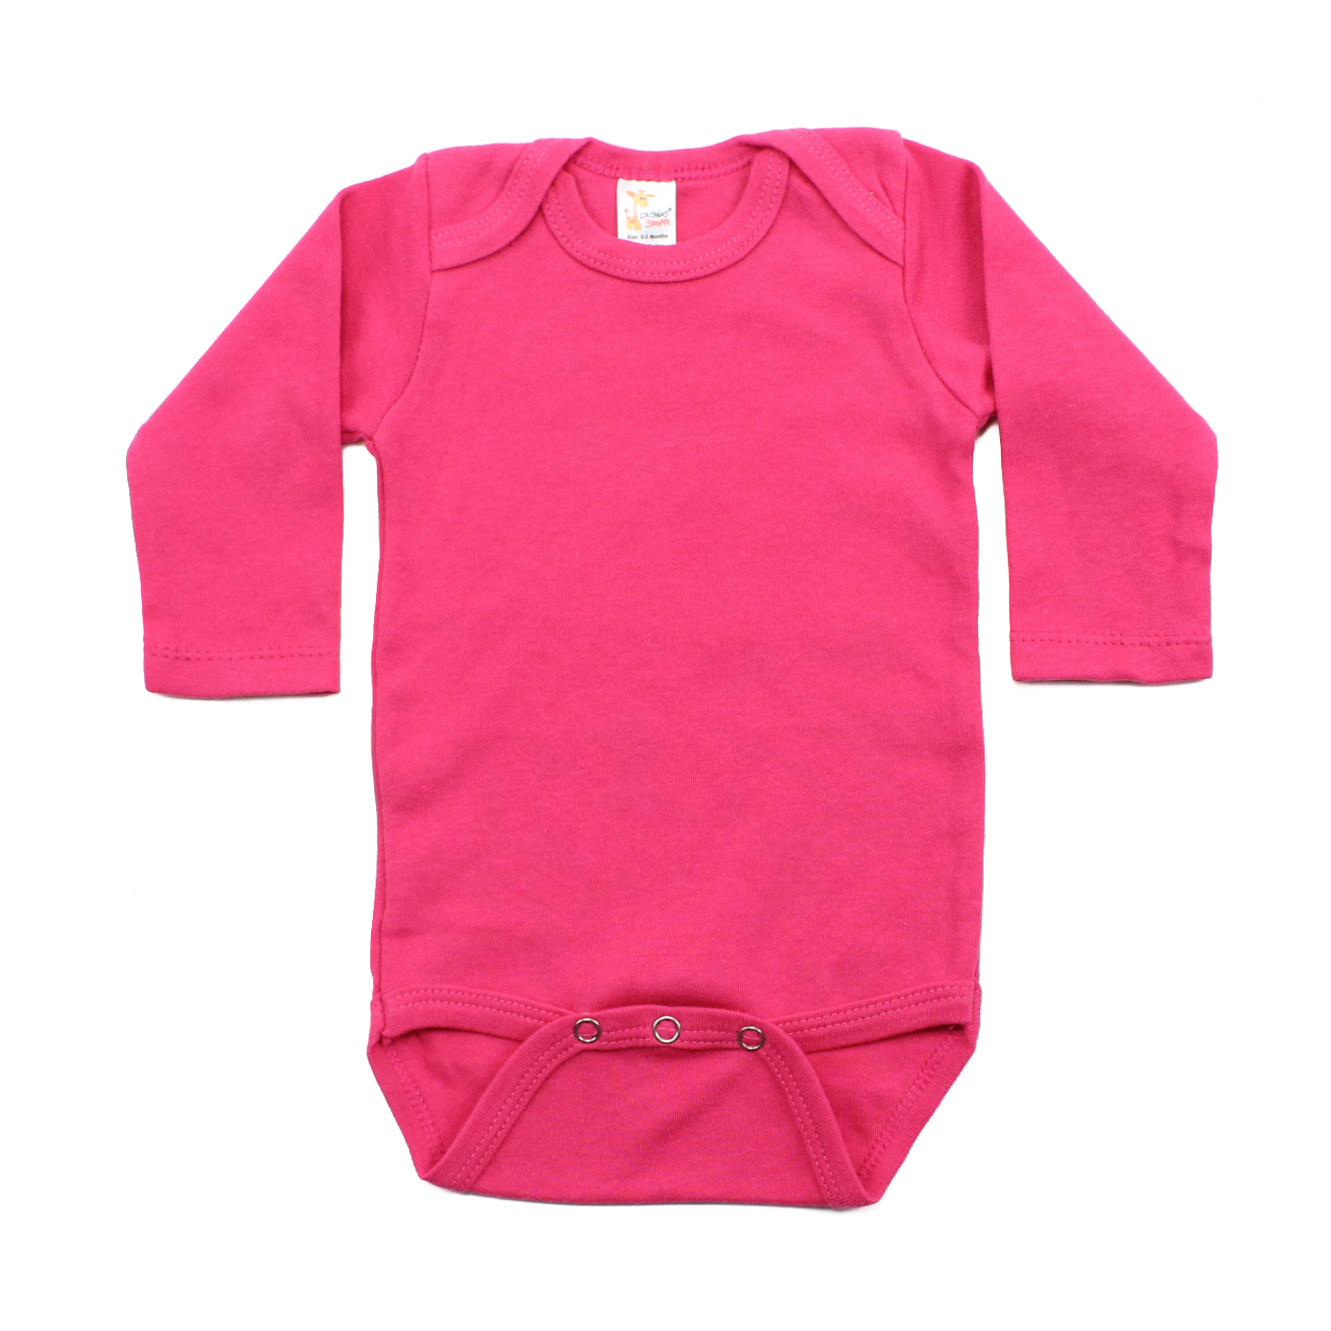 Crazy Baby Clothing Infant Cotton One Piece Long Sleeve ...